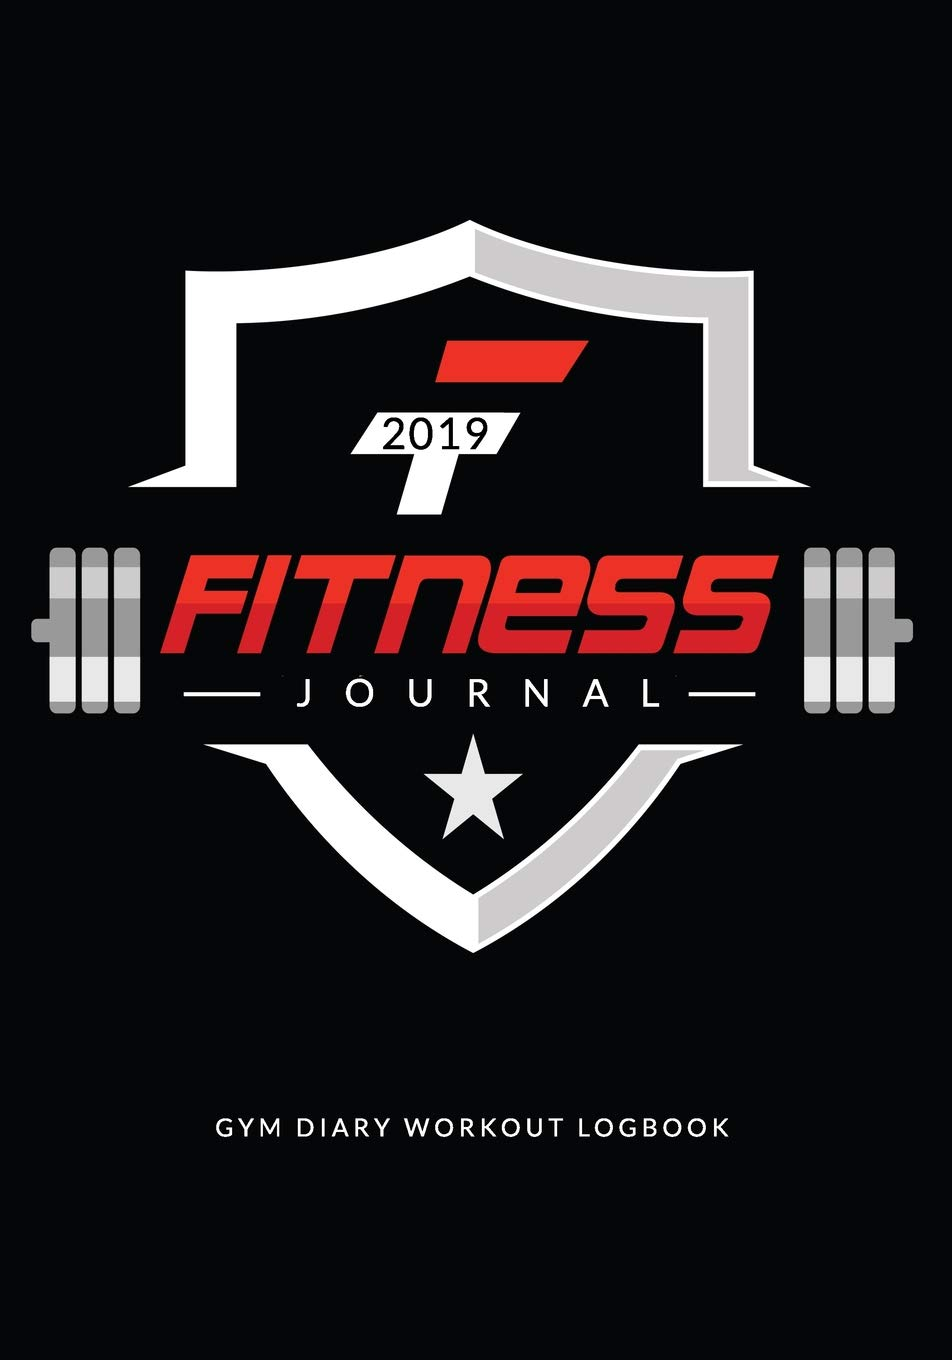 b22a01b90a88 Fitness Journal 2019   Gym Diary Workout Logbook  Track Fitness Over 100  Days